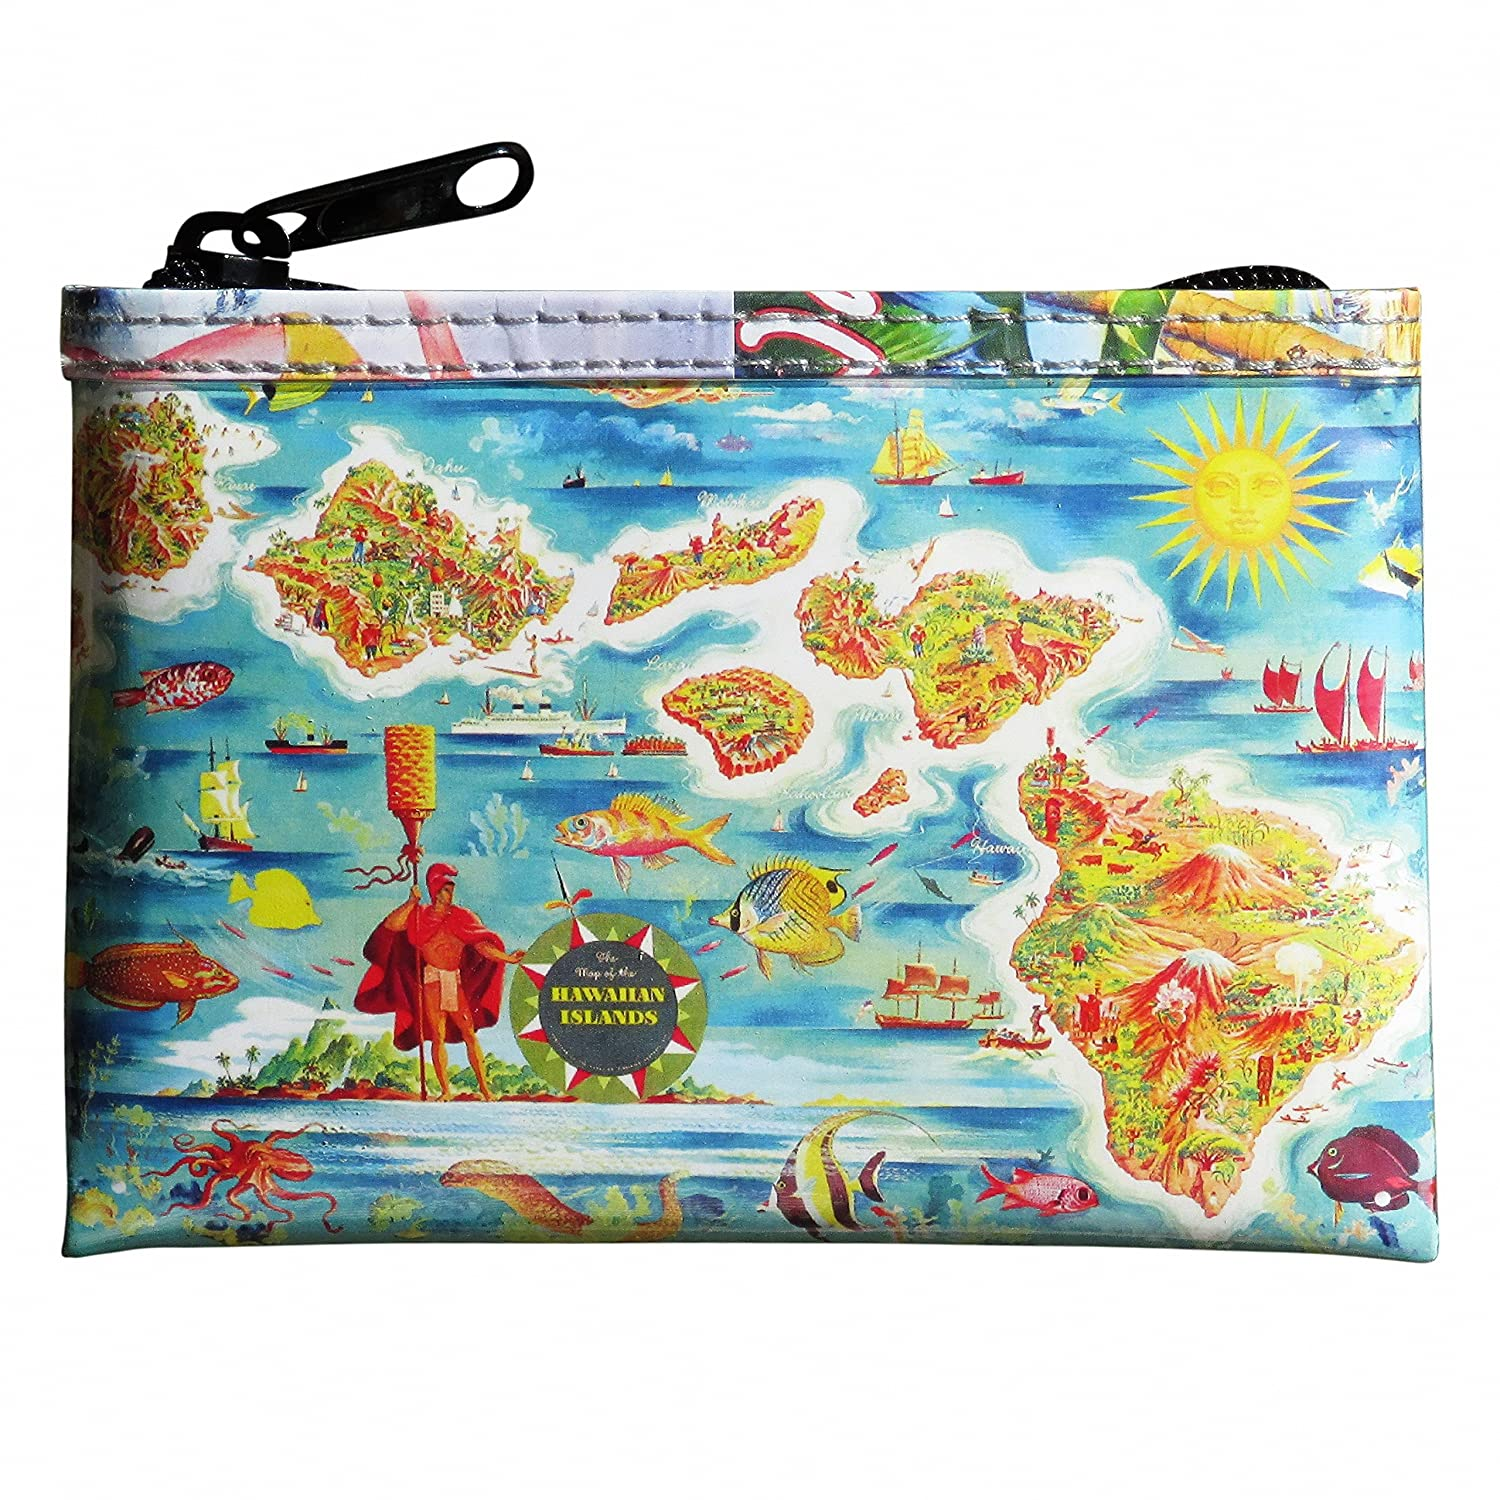 Amazon com: Coin purse with vintage Hawaiian map print FREE SHIPPING